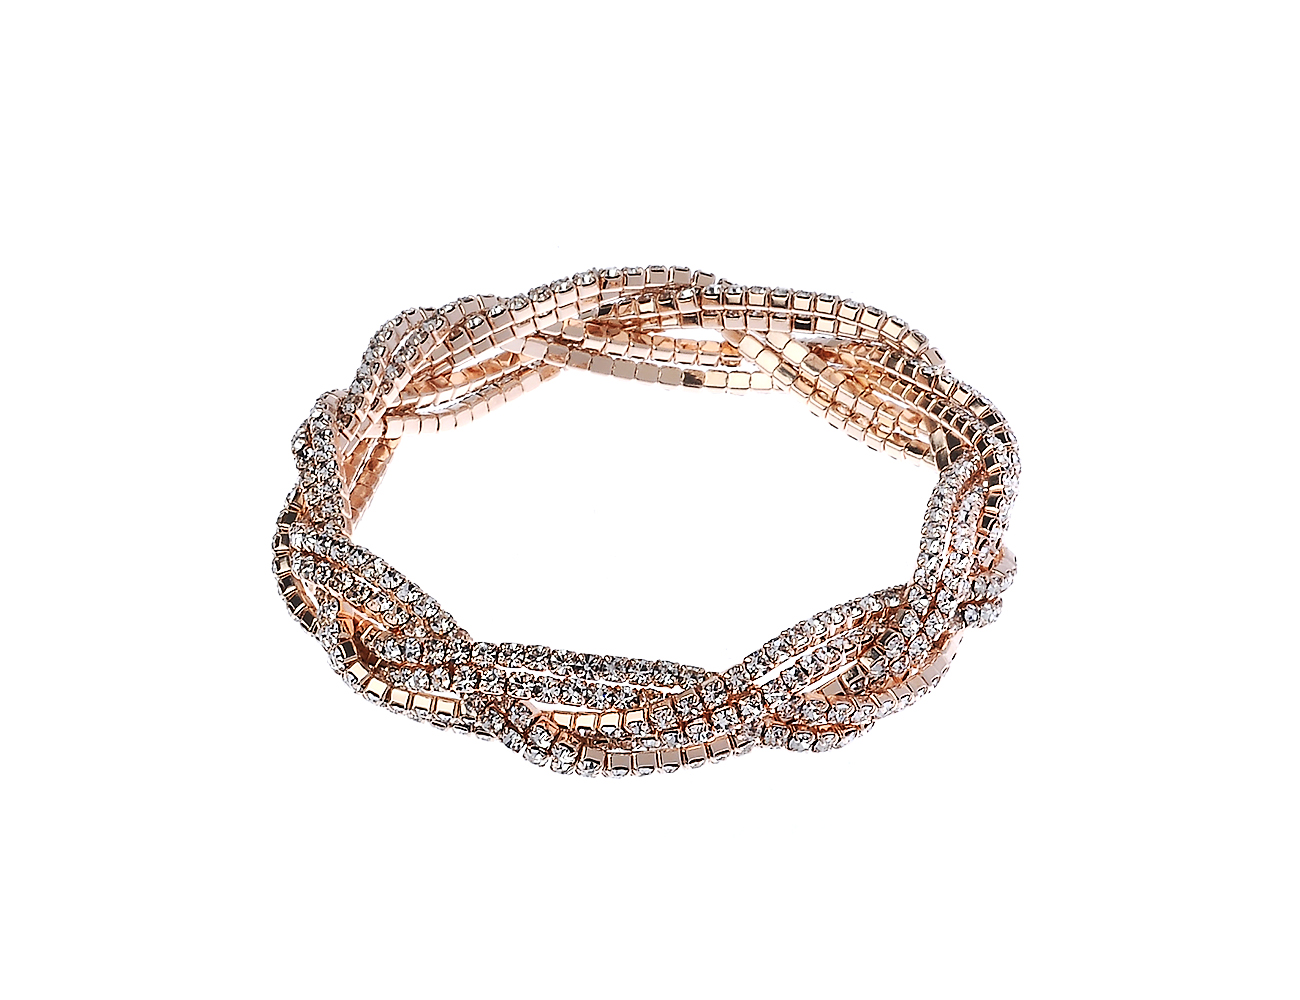 Rose Gold Twisted Cup Chain Bracelet With Crystal Stones